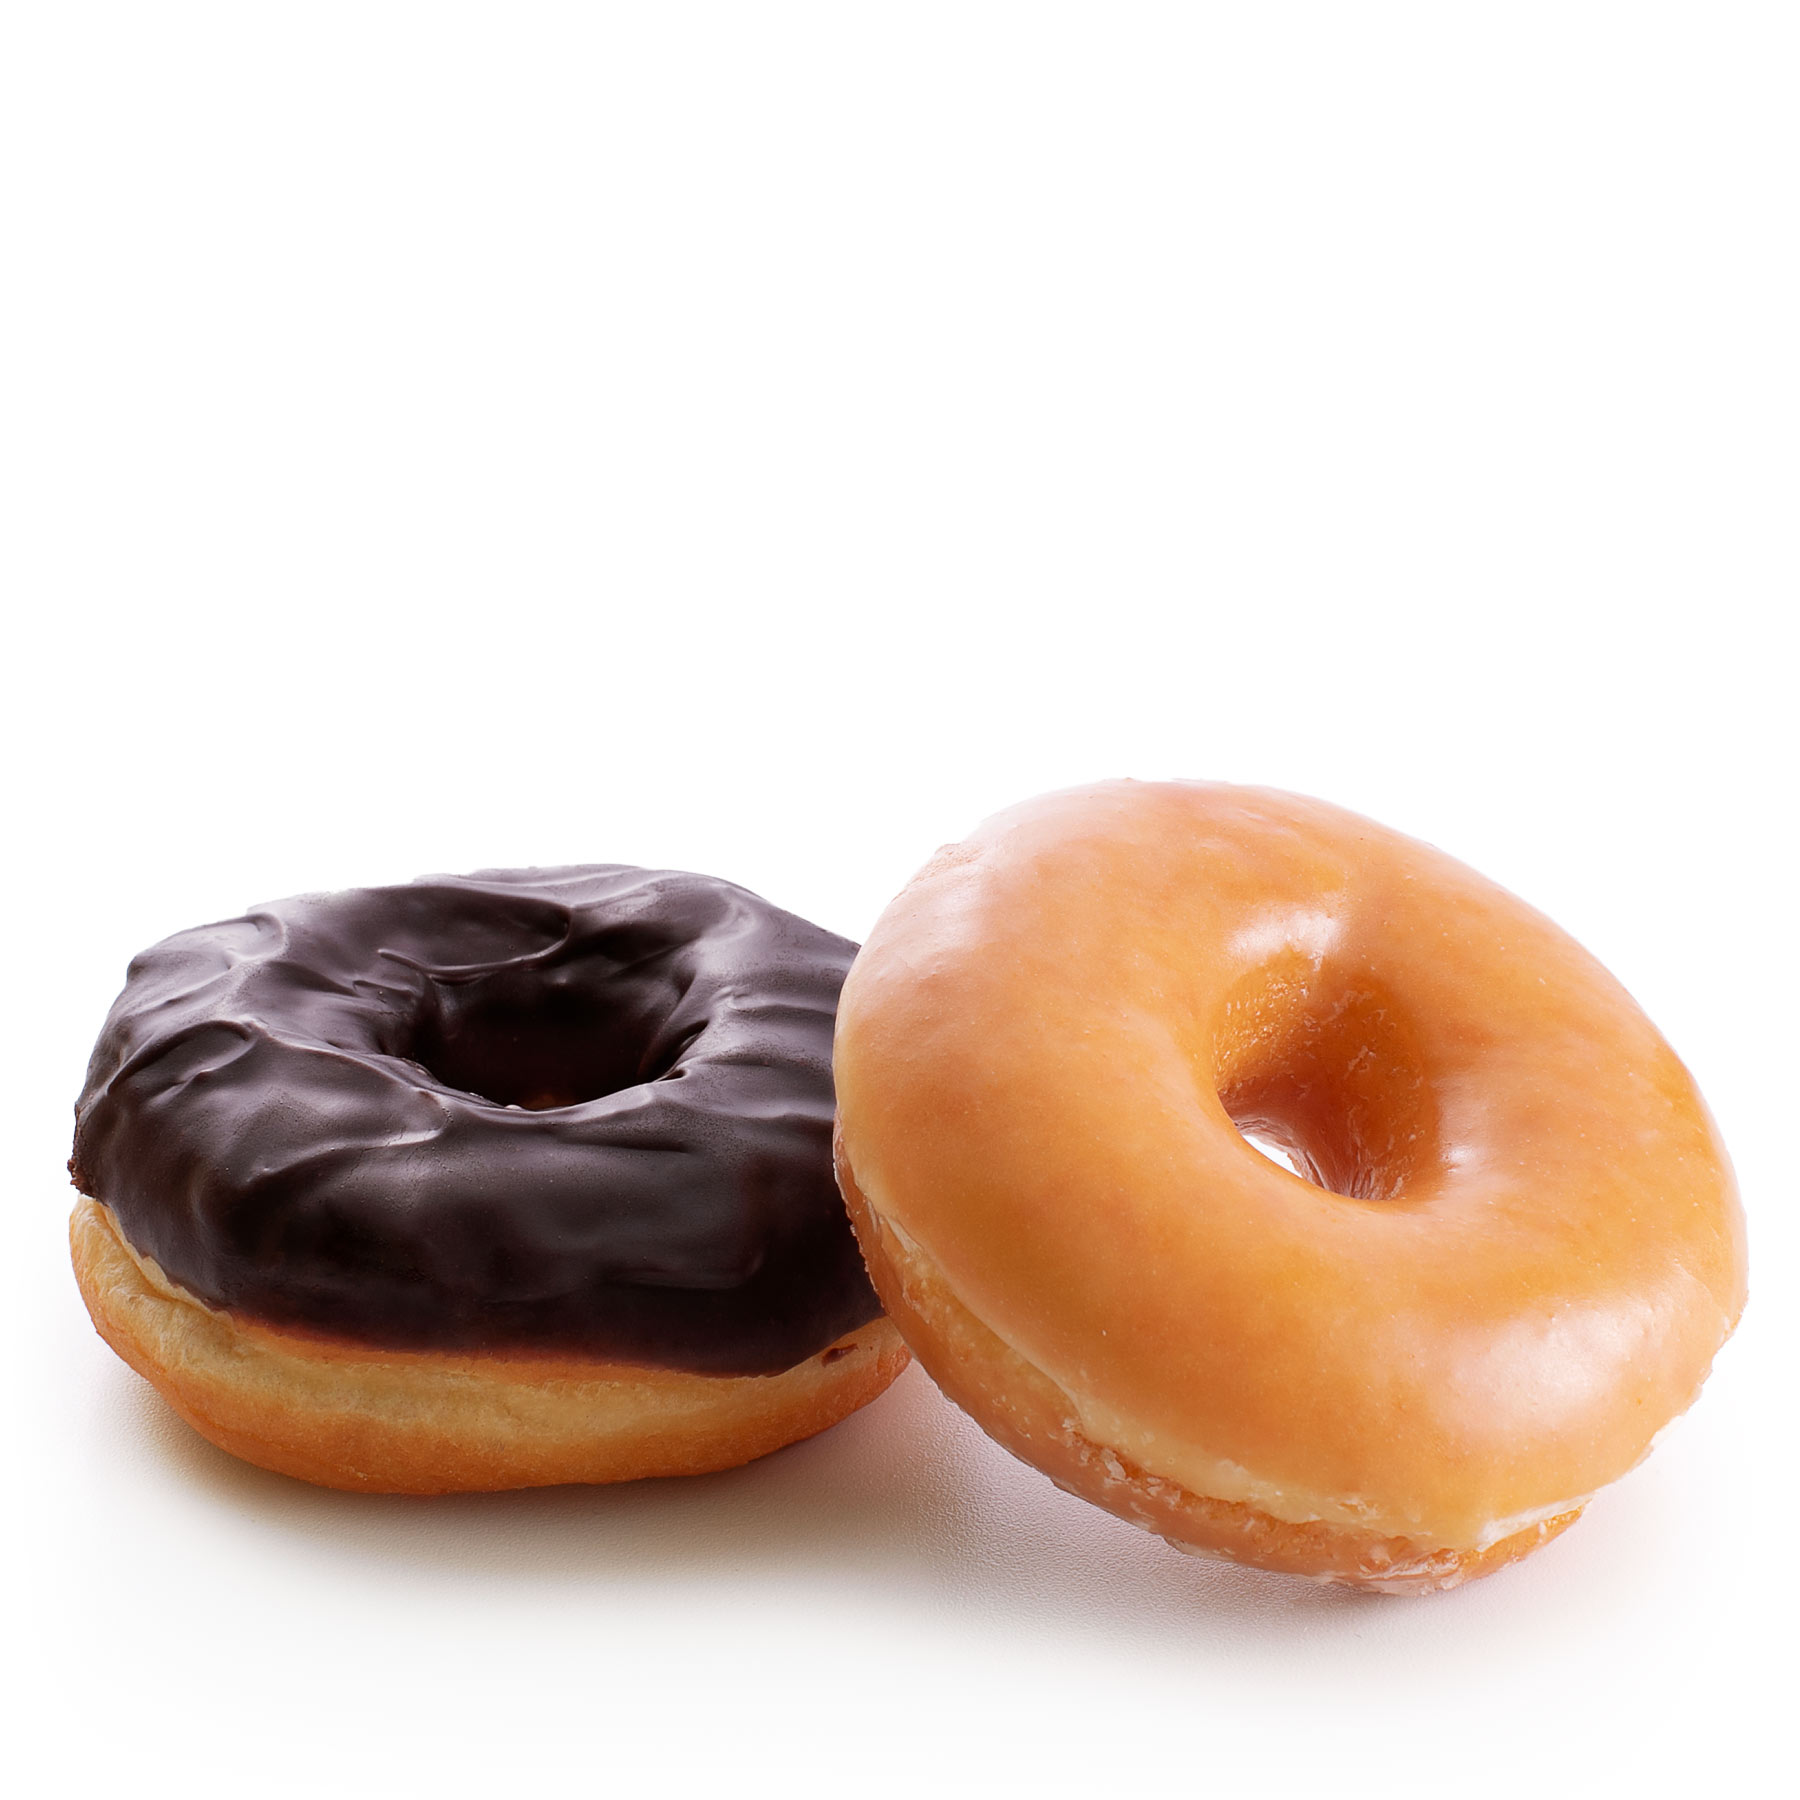 Freshly baked donuts, one chocolate glazed donut and a plain glazed donut.